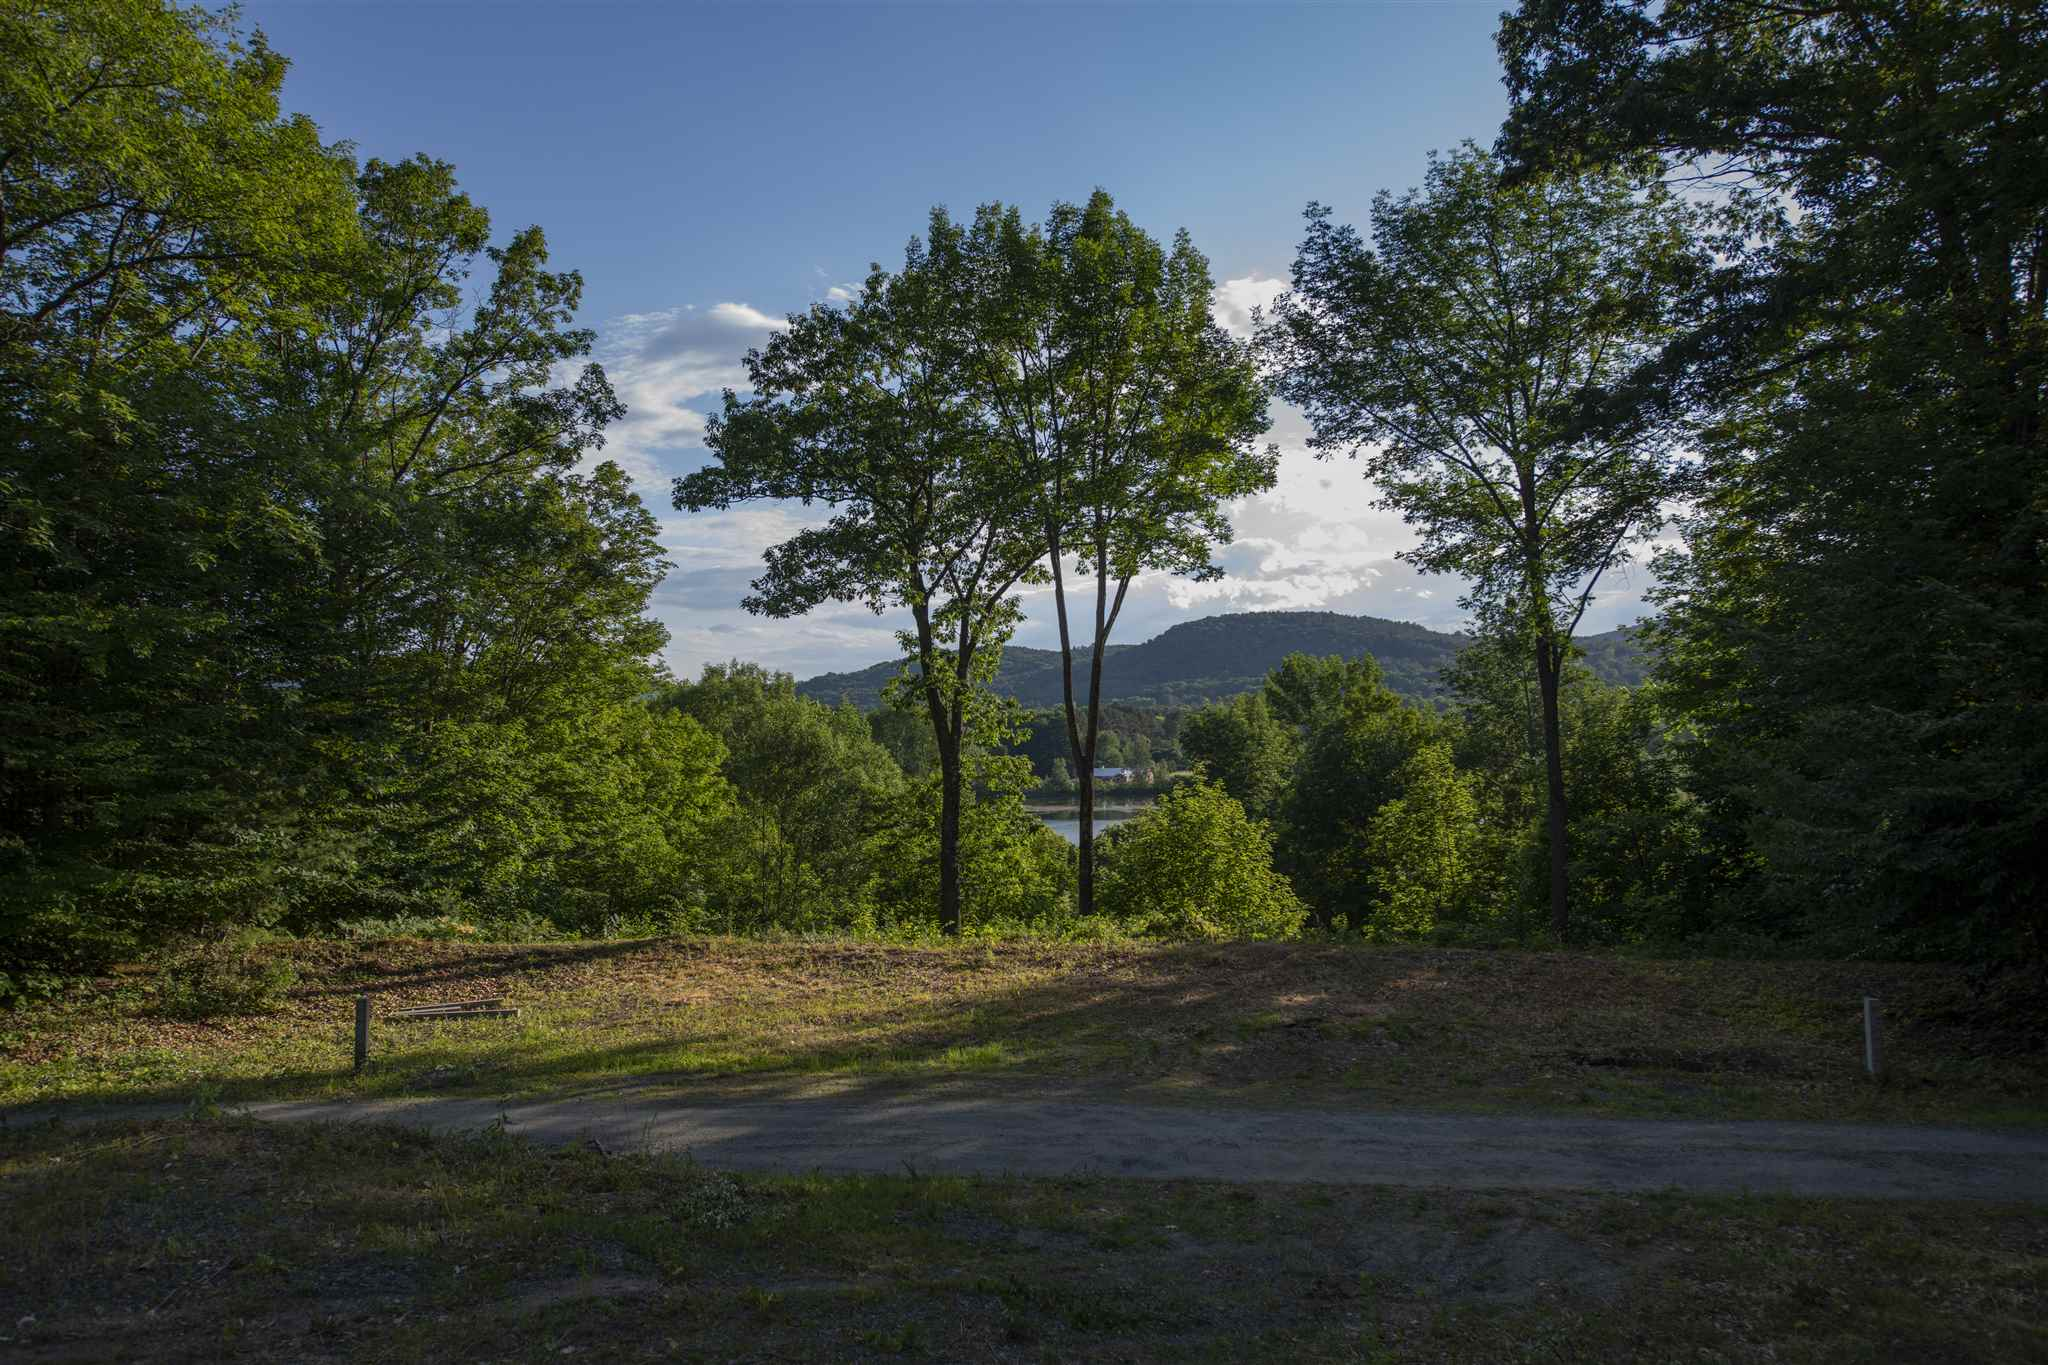 VILLAGE OF QUECHEE IN TOWN OF HARTFORD VTLAND  for sale $$150,000 | 2.71 Acres  | Price Per Acre $0  | Total Lots 2